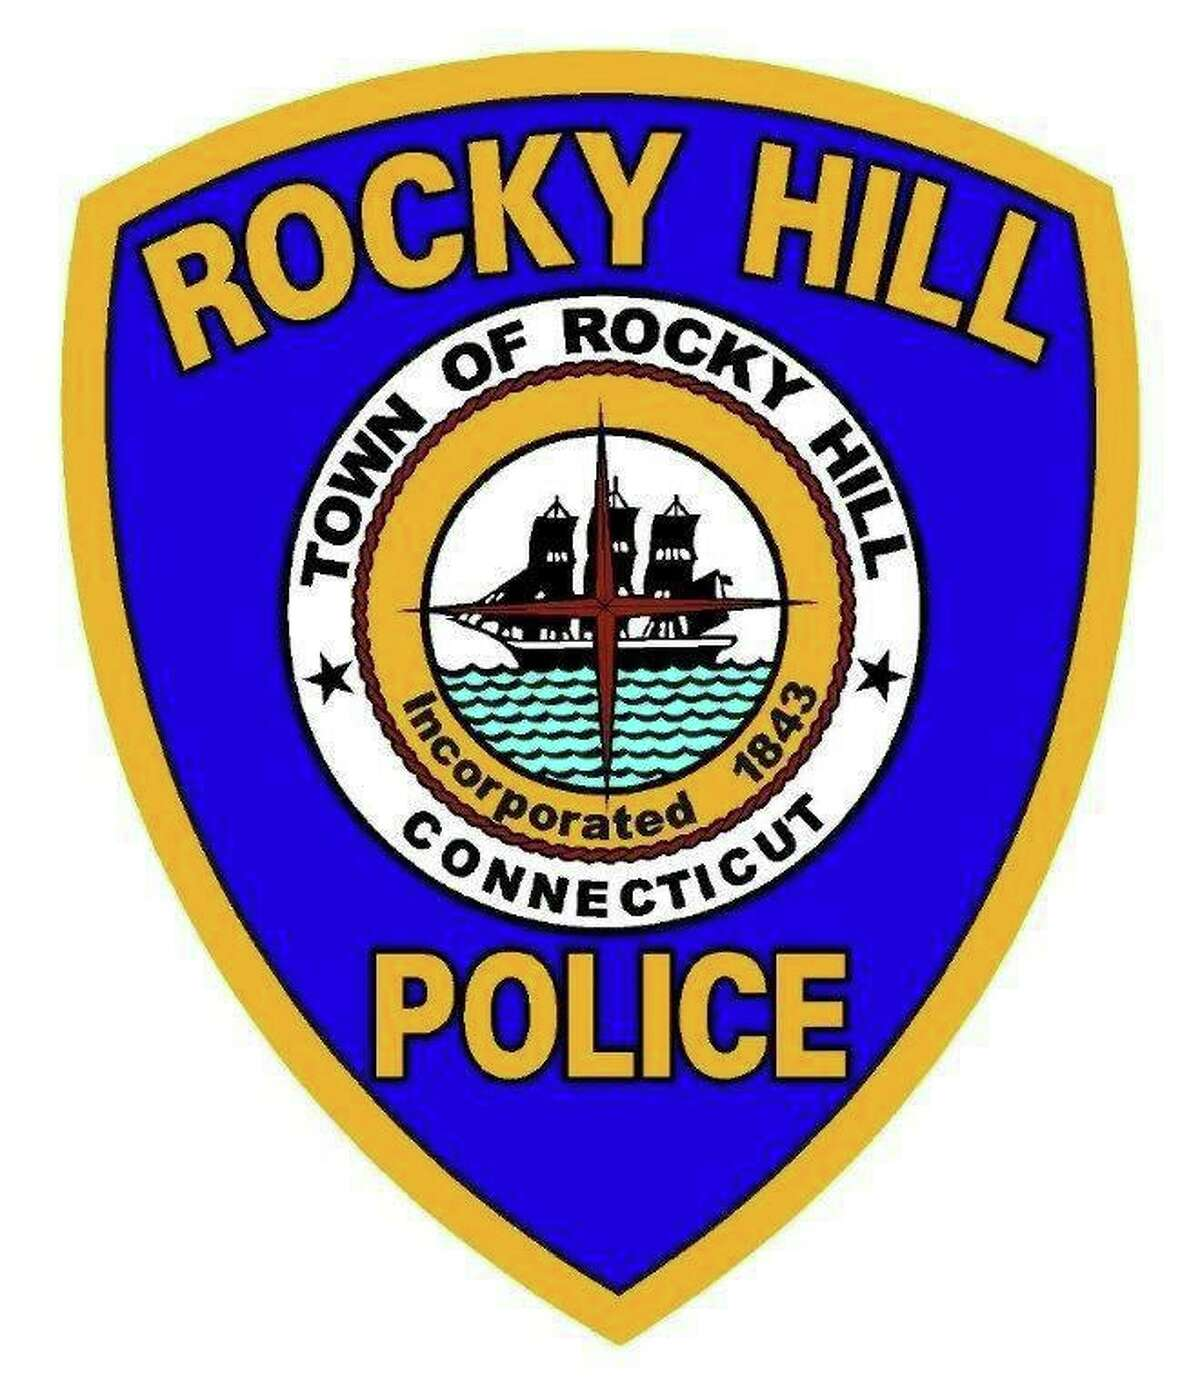 A Rocky Hill homeowner interrupted a vehicle burglary in the driveway of their residence early Thursday morning and left the house to confront the suspect. As the suspect fled in an SUV, a gunshot was fired from the fleeing vehicle, police said. There were no reported injuries.